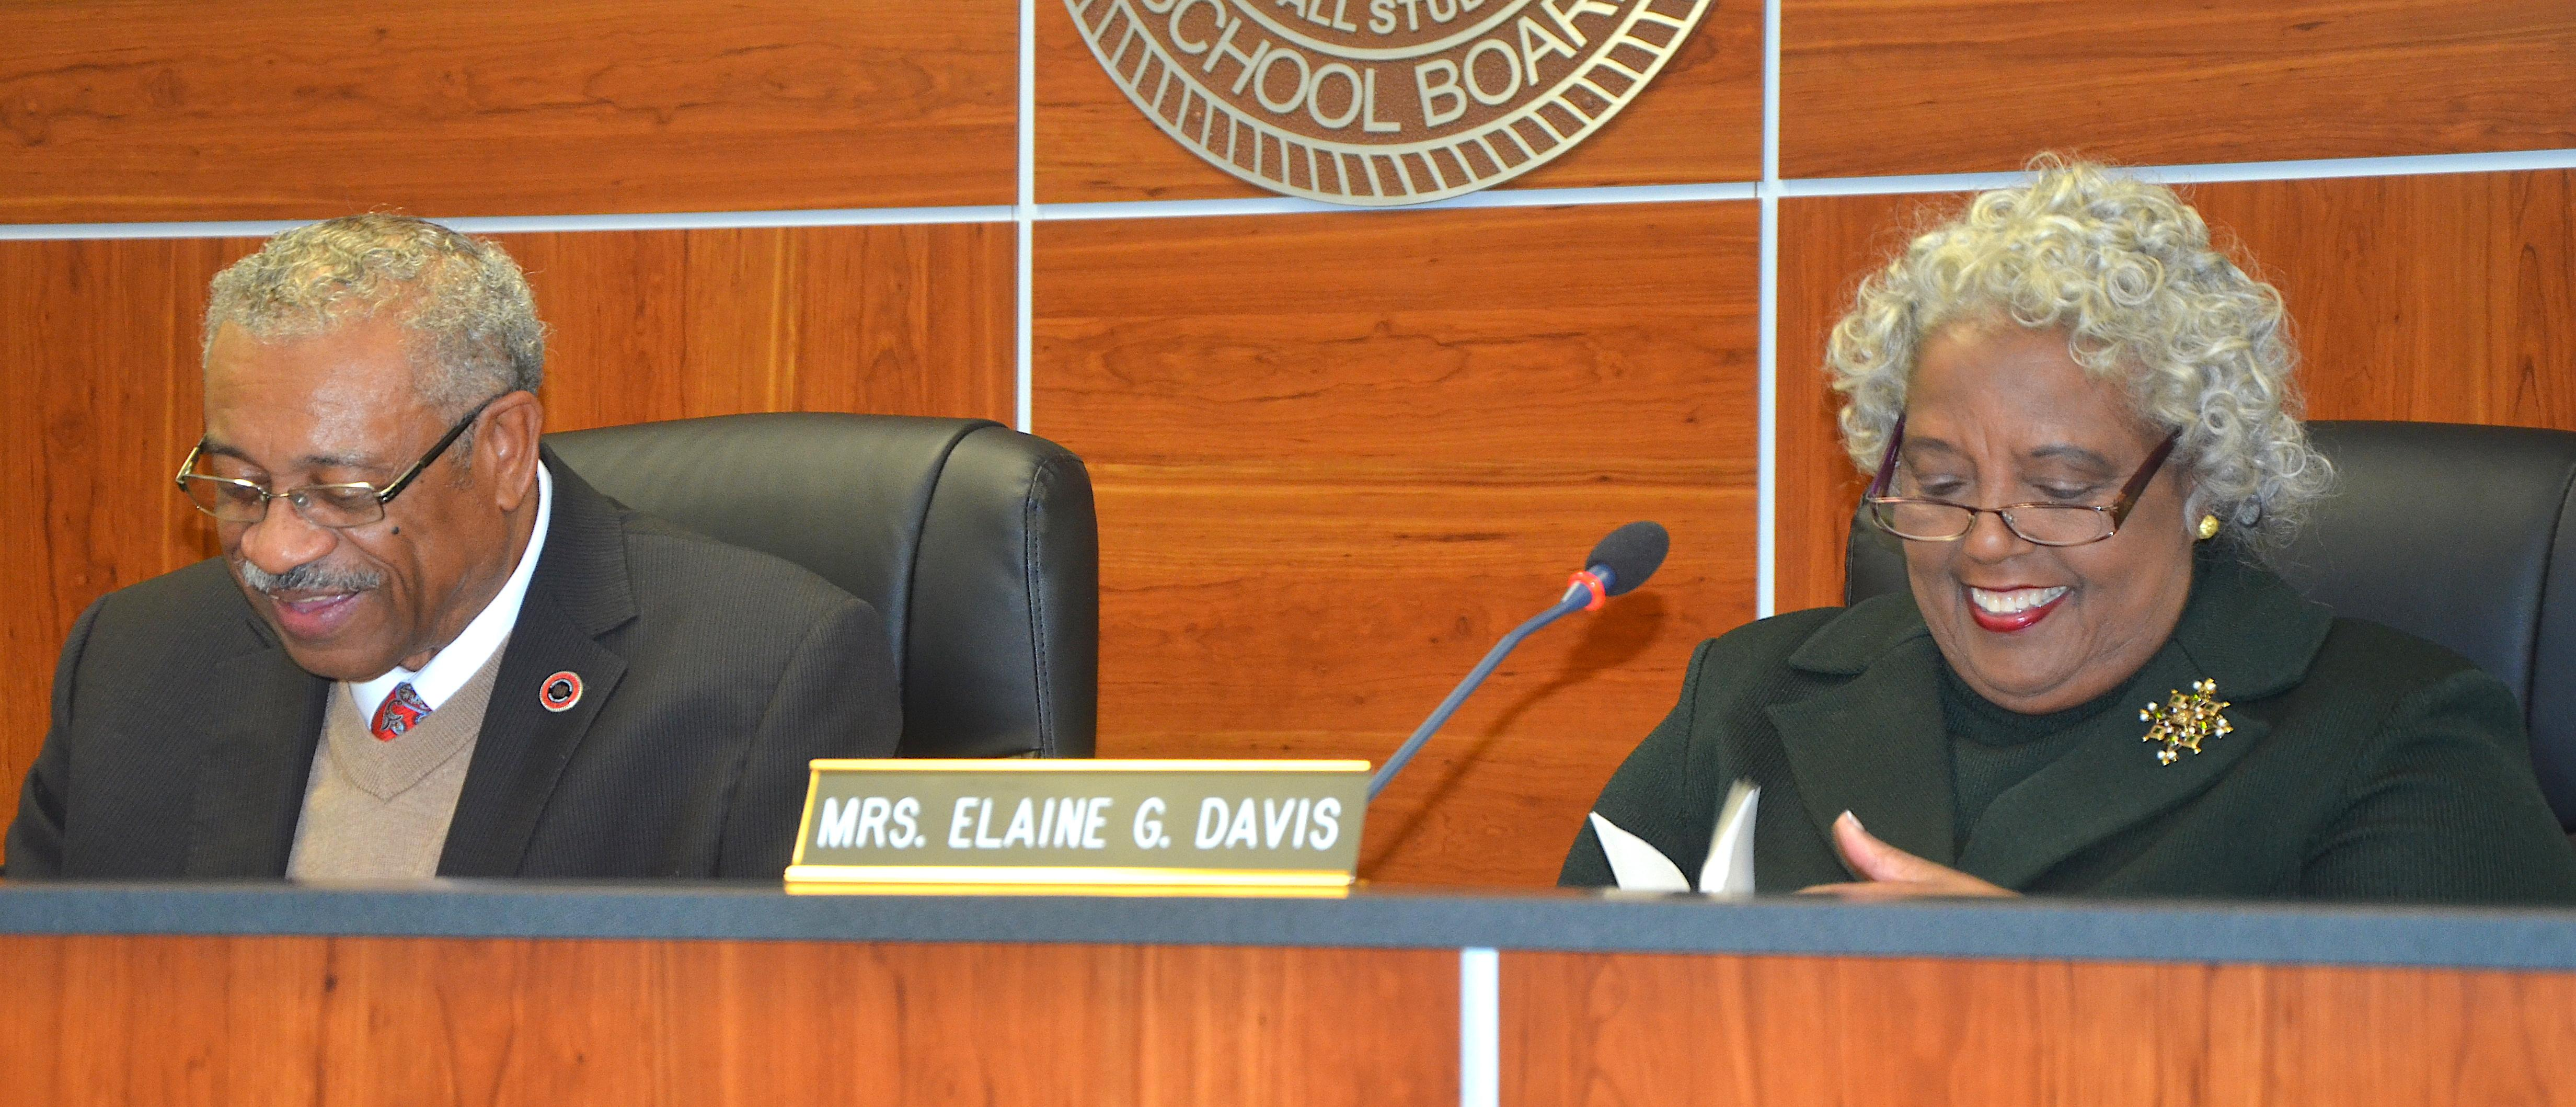 Photo of new Baker School Board Chairman, Dr. Dana Carpenter, and Elaine Davis sharing a laugh at board meeting